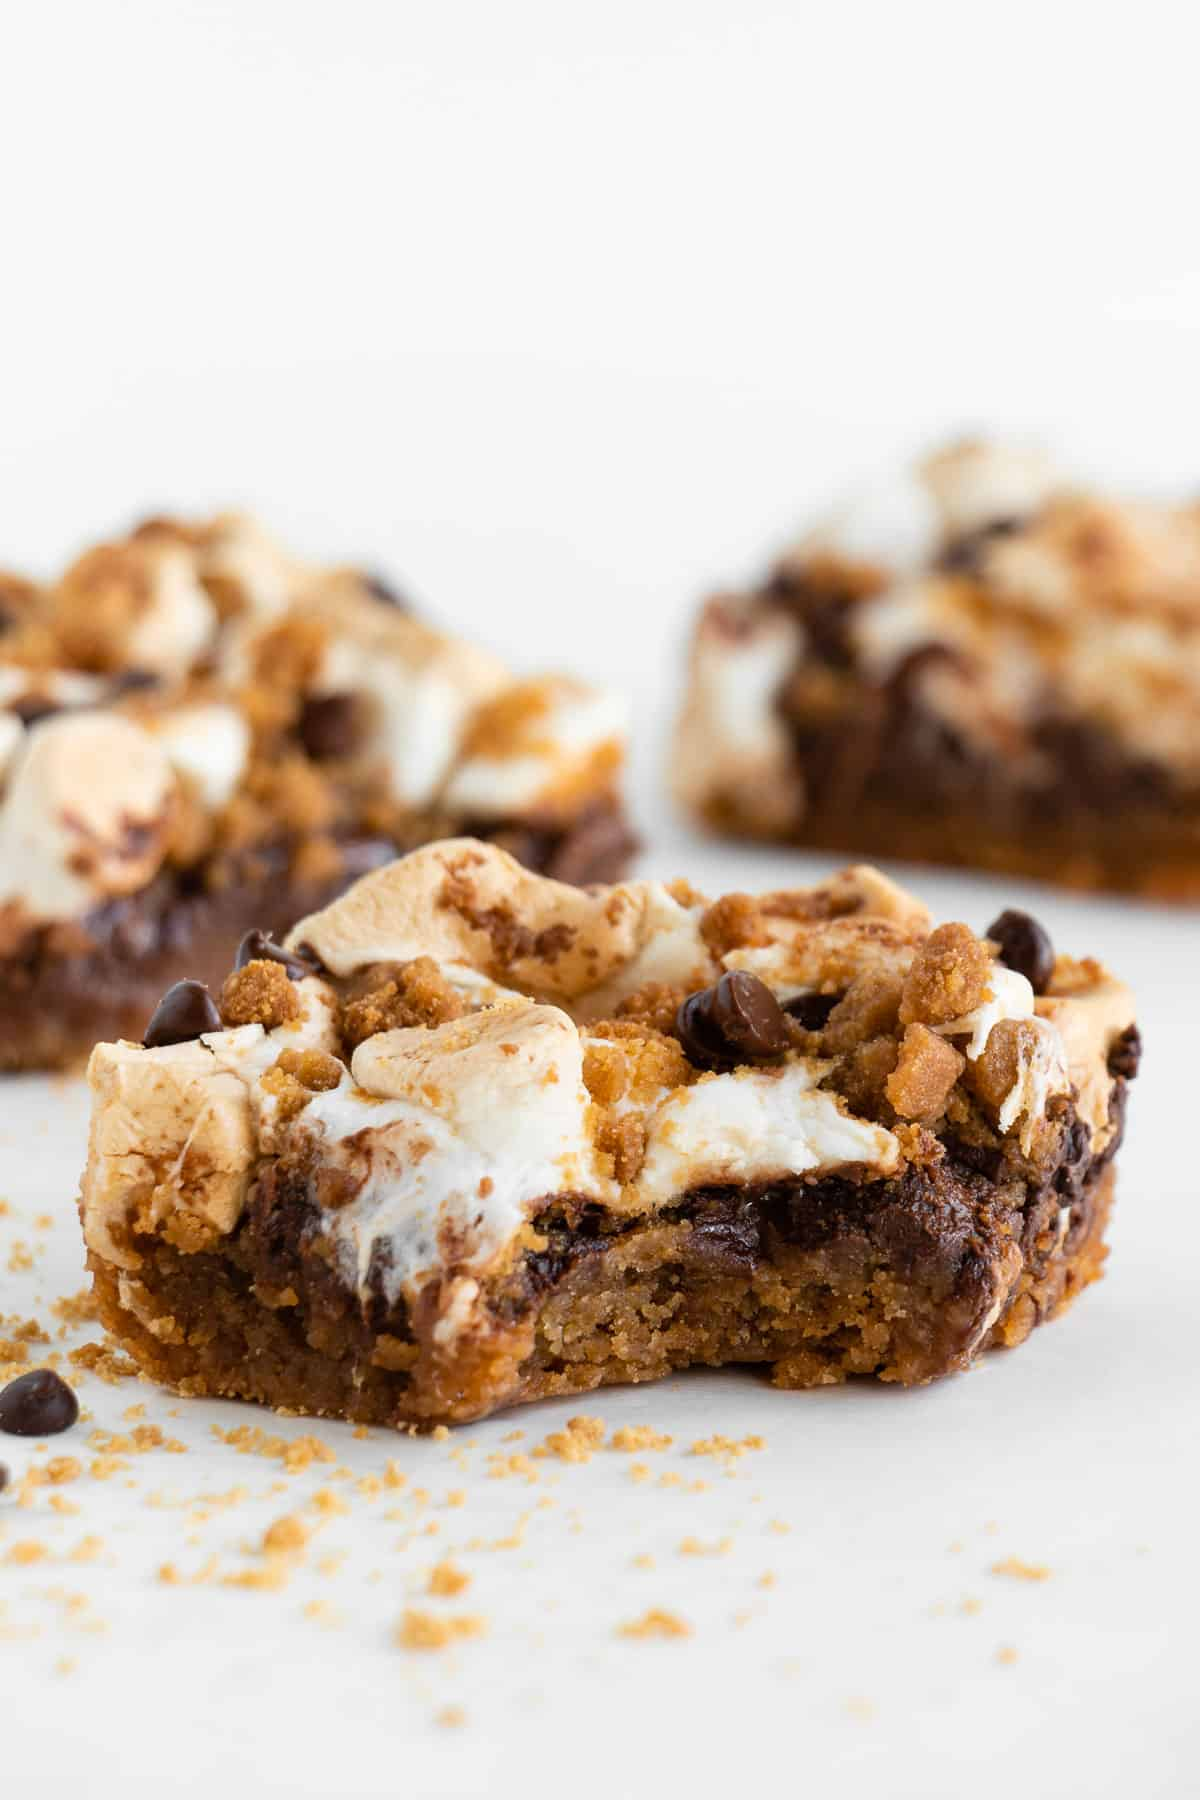 a vegan s'mores bar with a bite taken out of the center